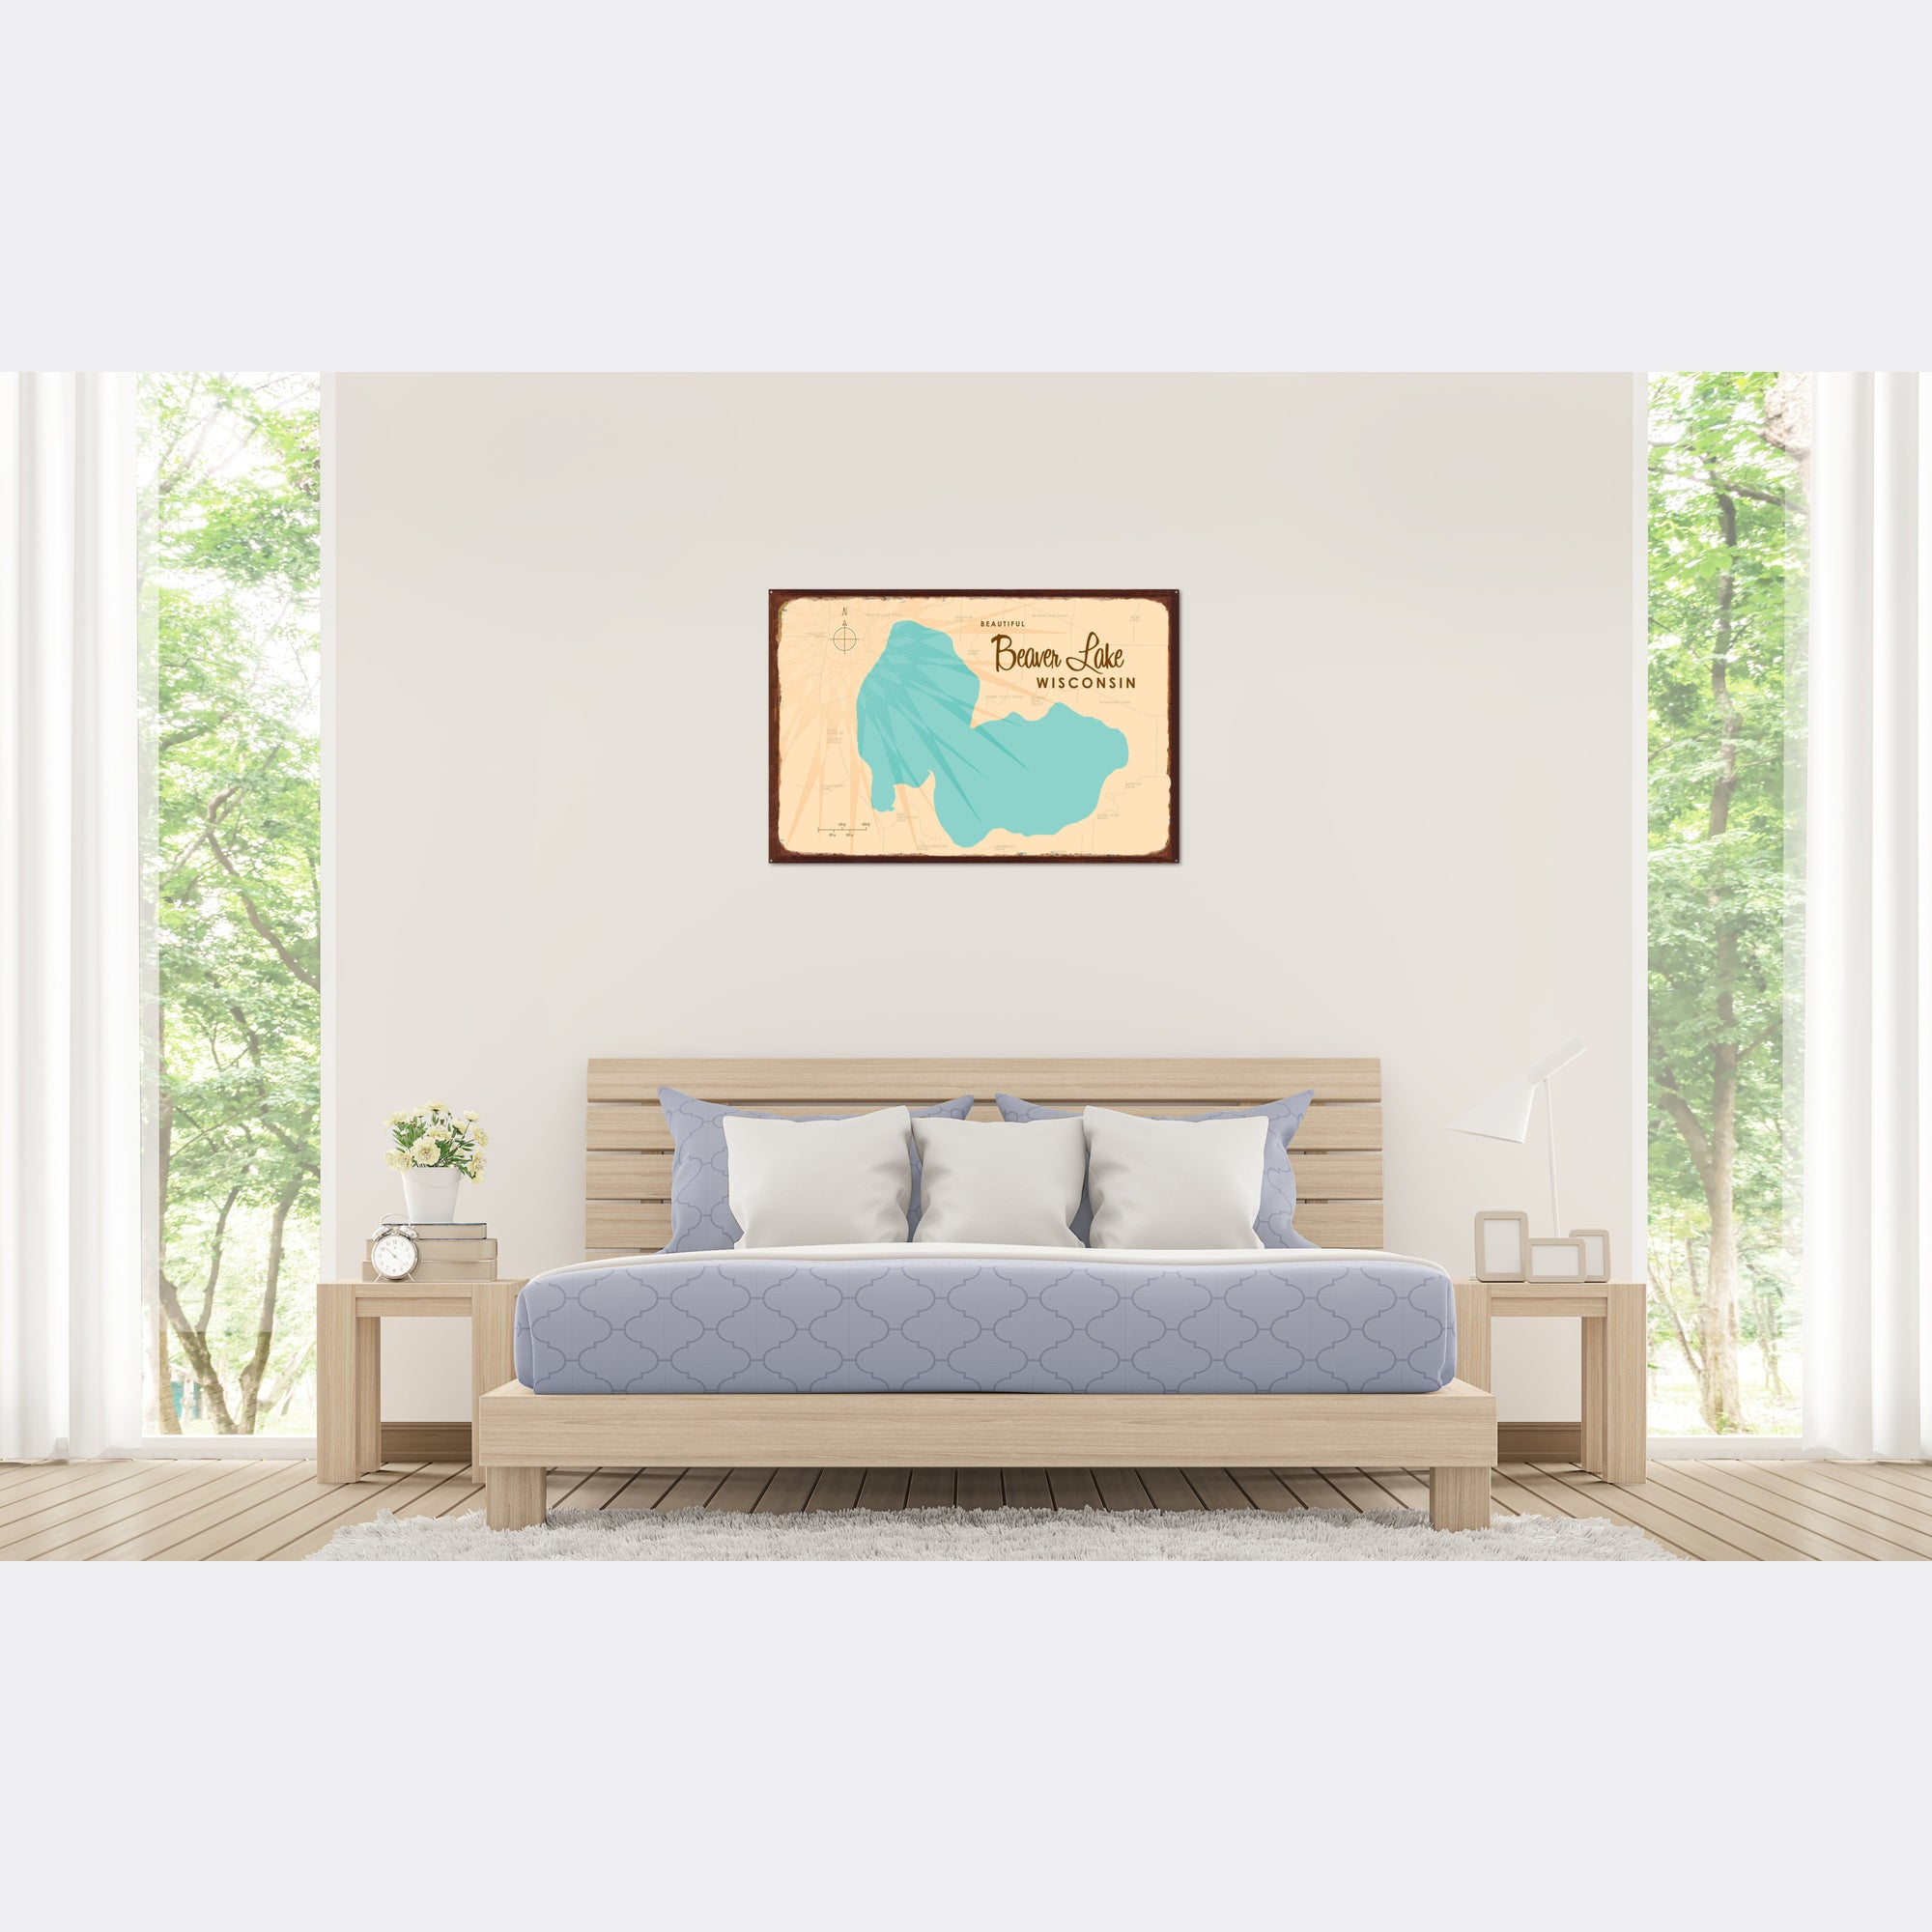 Beaver Lake Wisconsin, Rustic Metal Sign Map Art